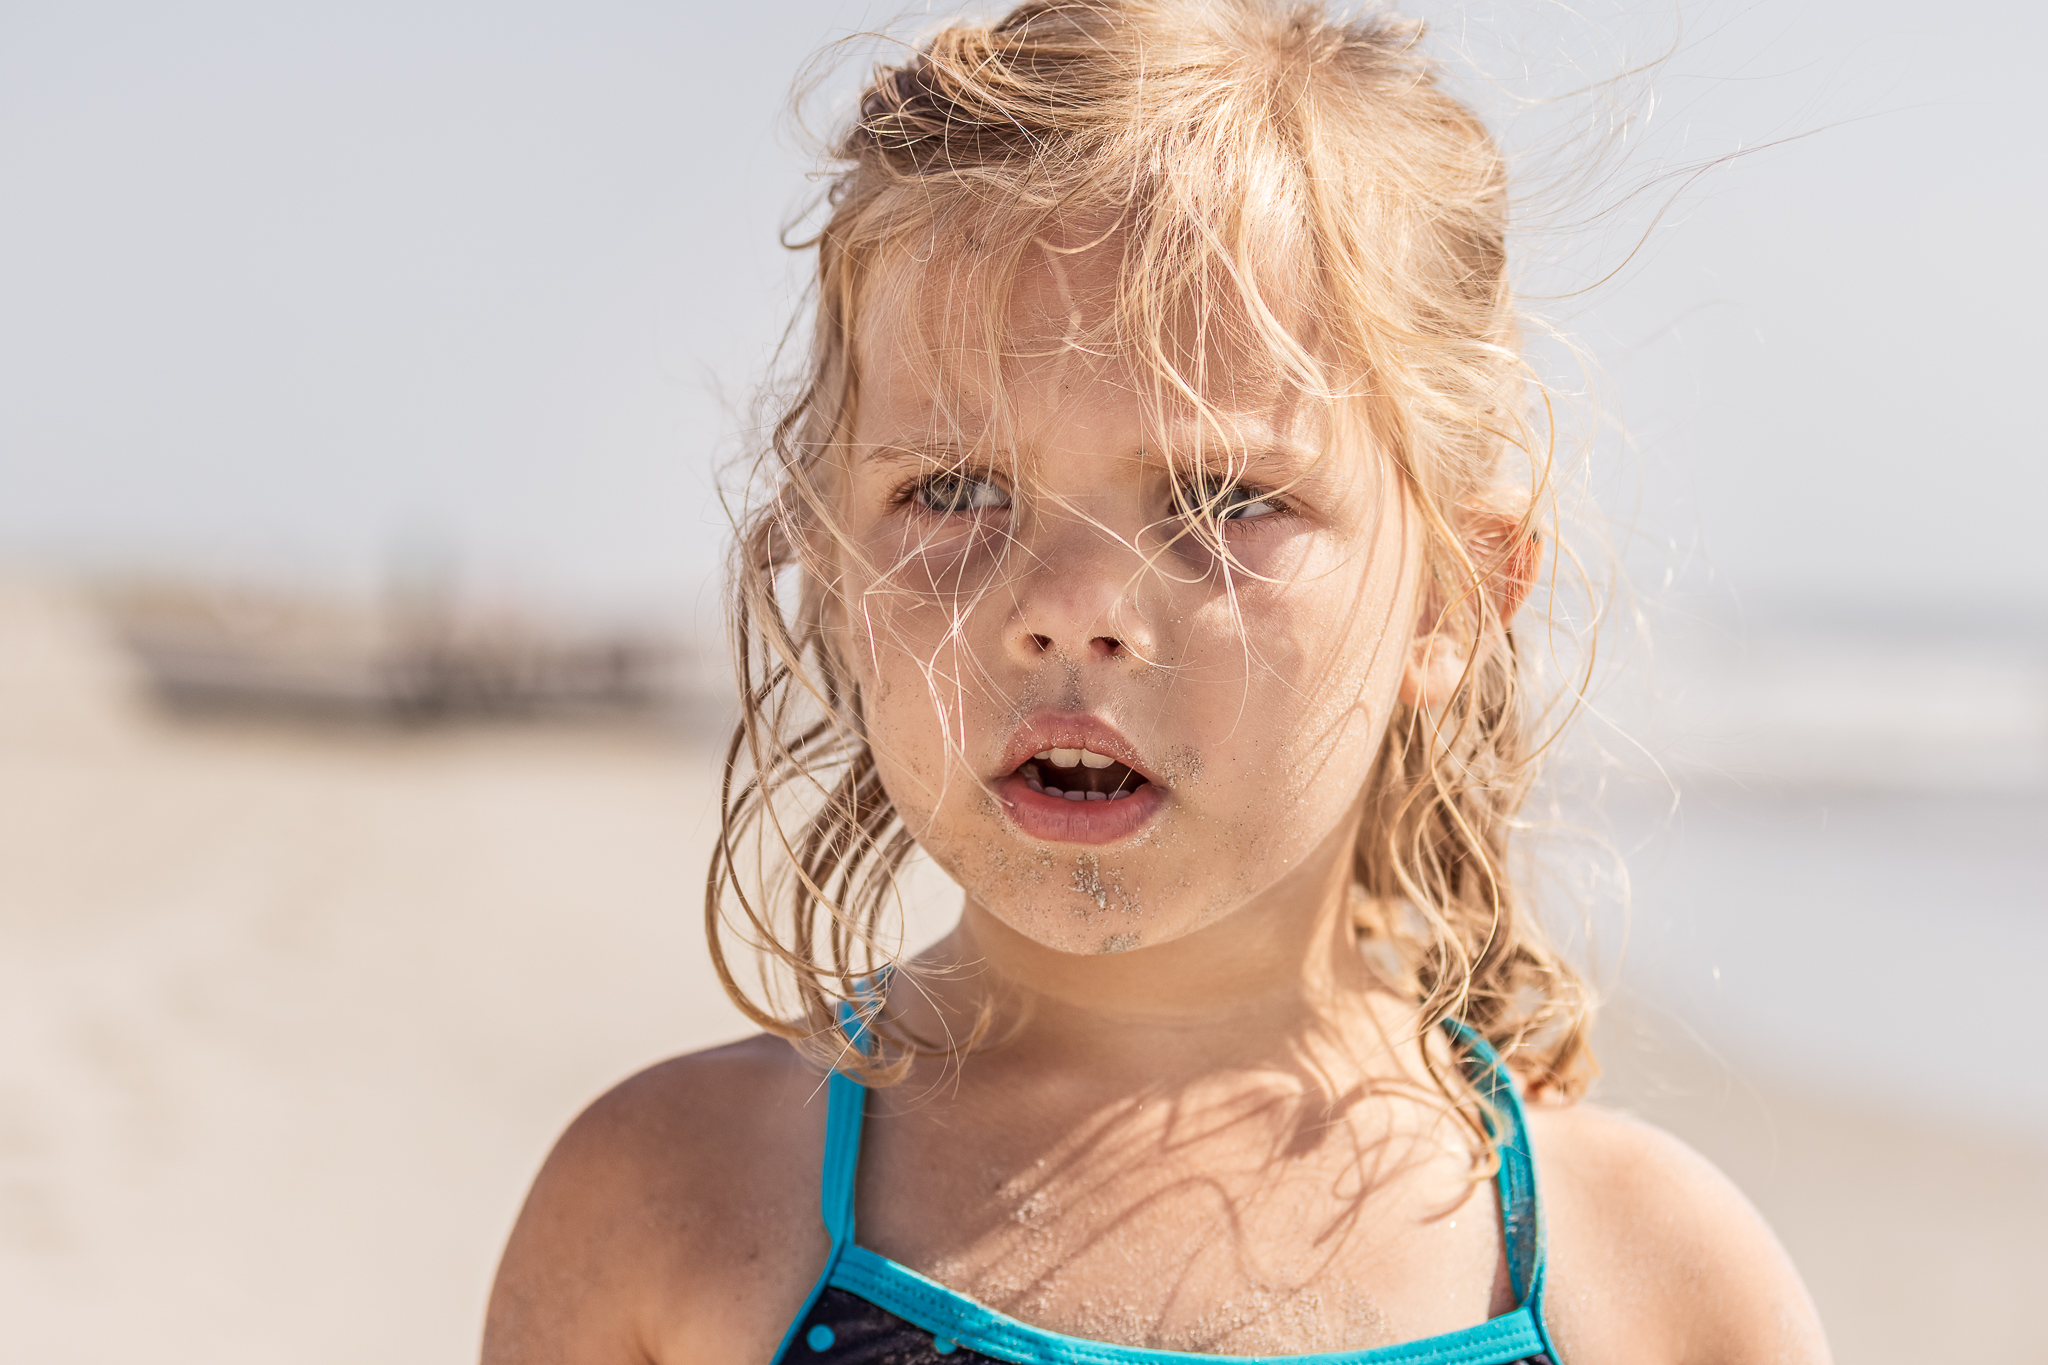 New Jersey Beach Photographer, Sand and Hair in Face of Girl at Beach